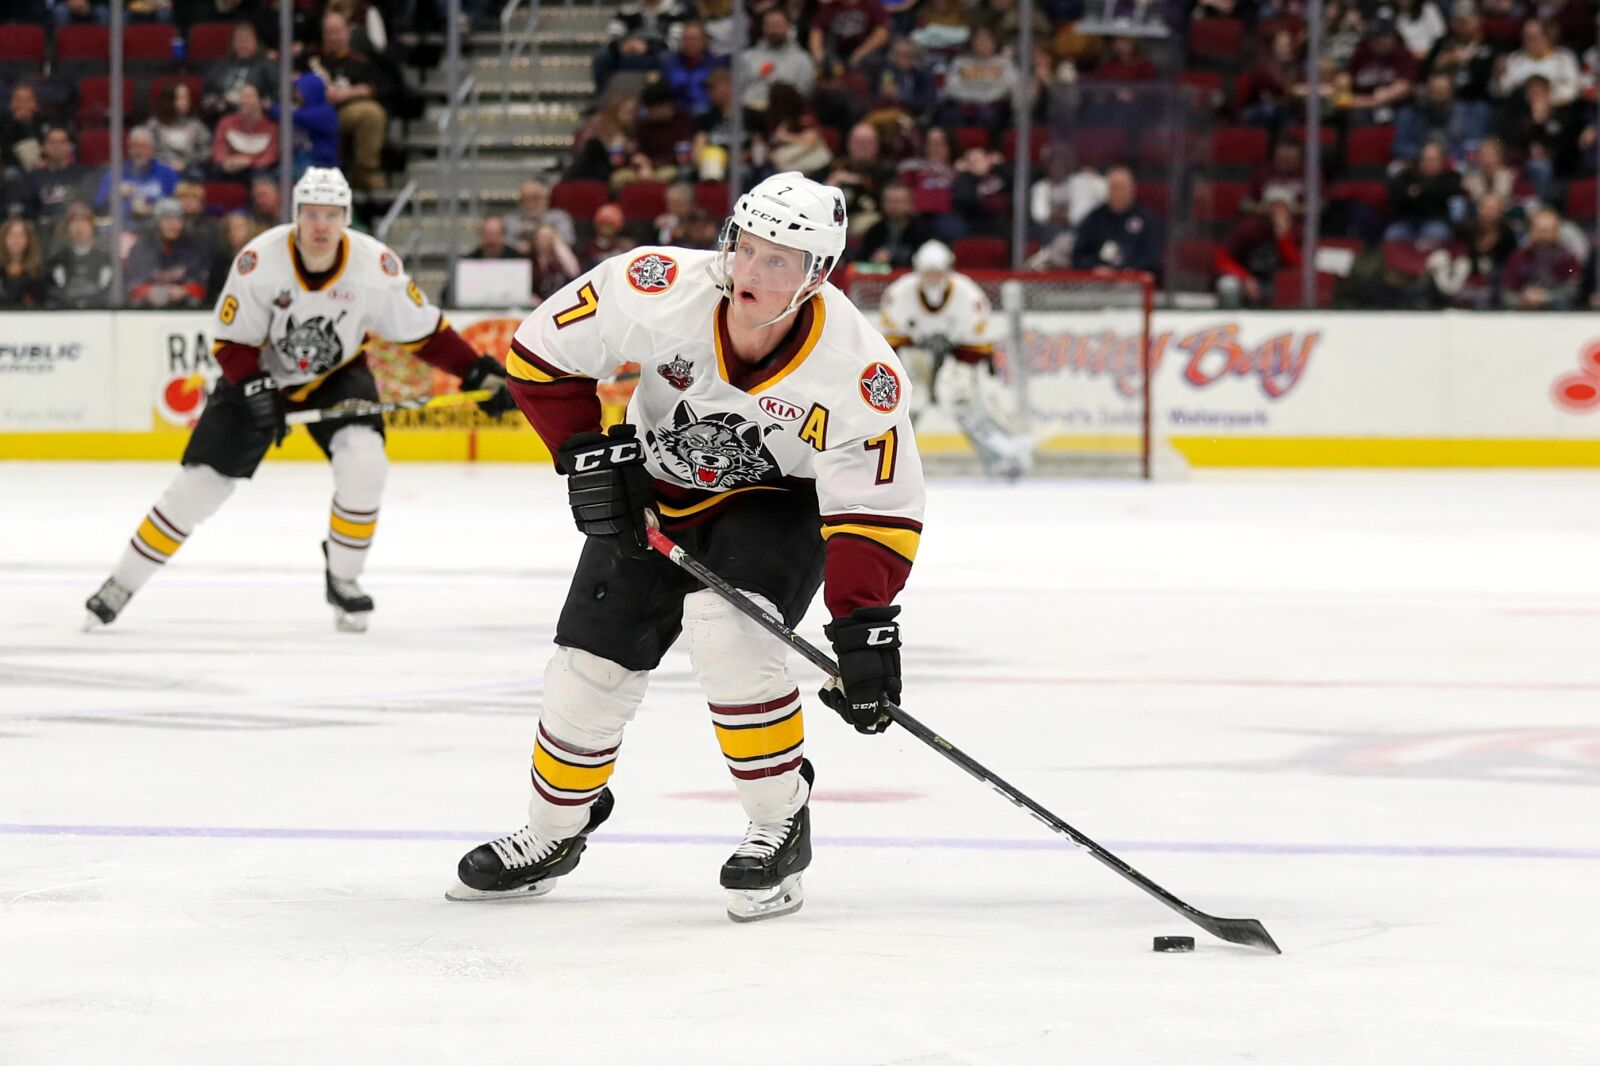 Vegas Golden Knights: Chicago Wolves' Playoff run vital for young guns